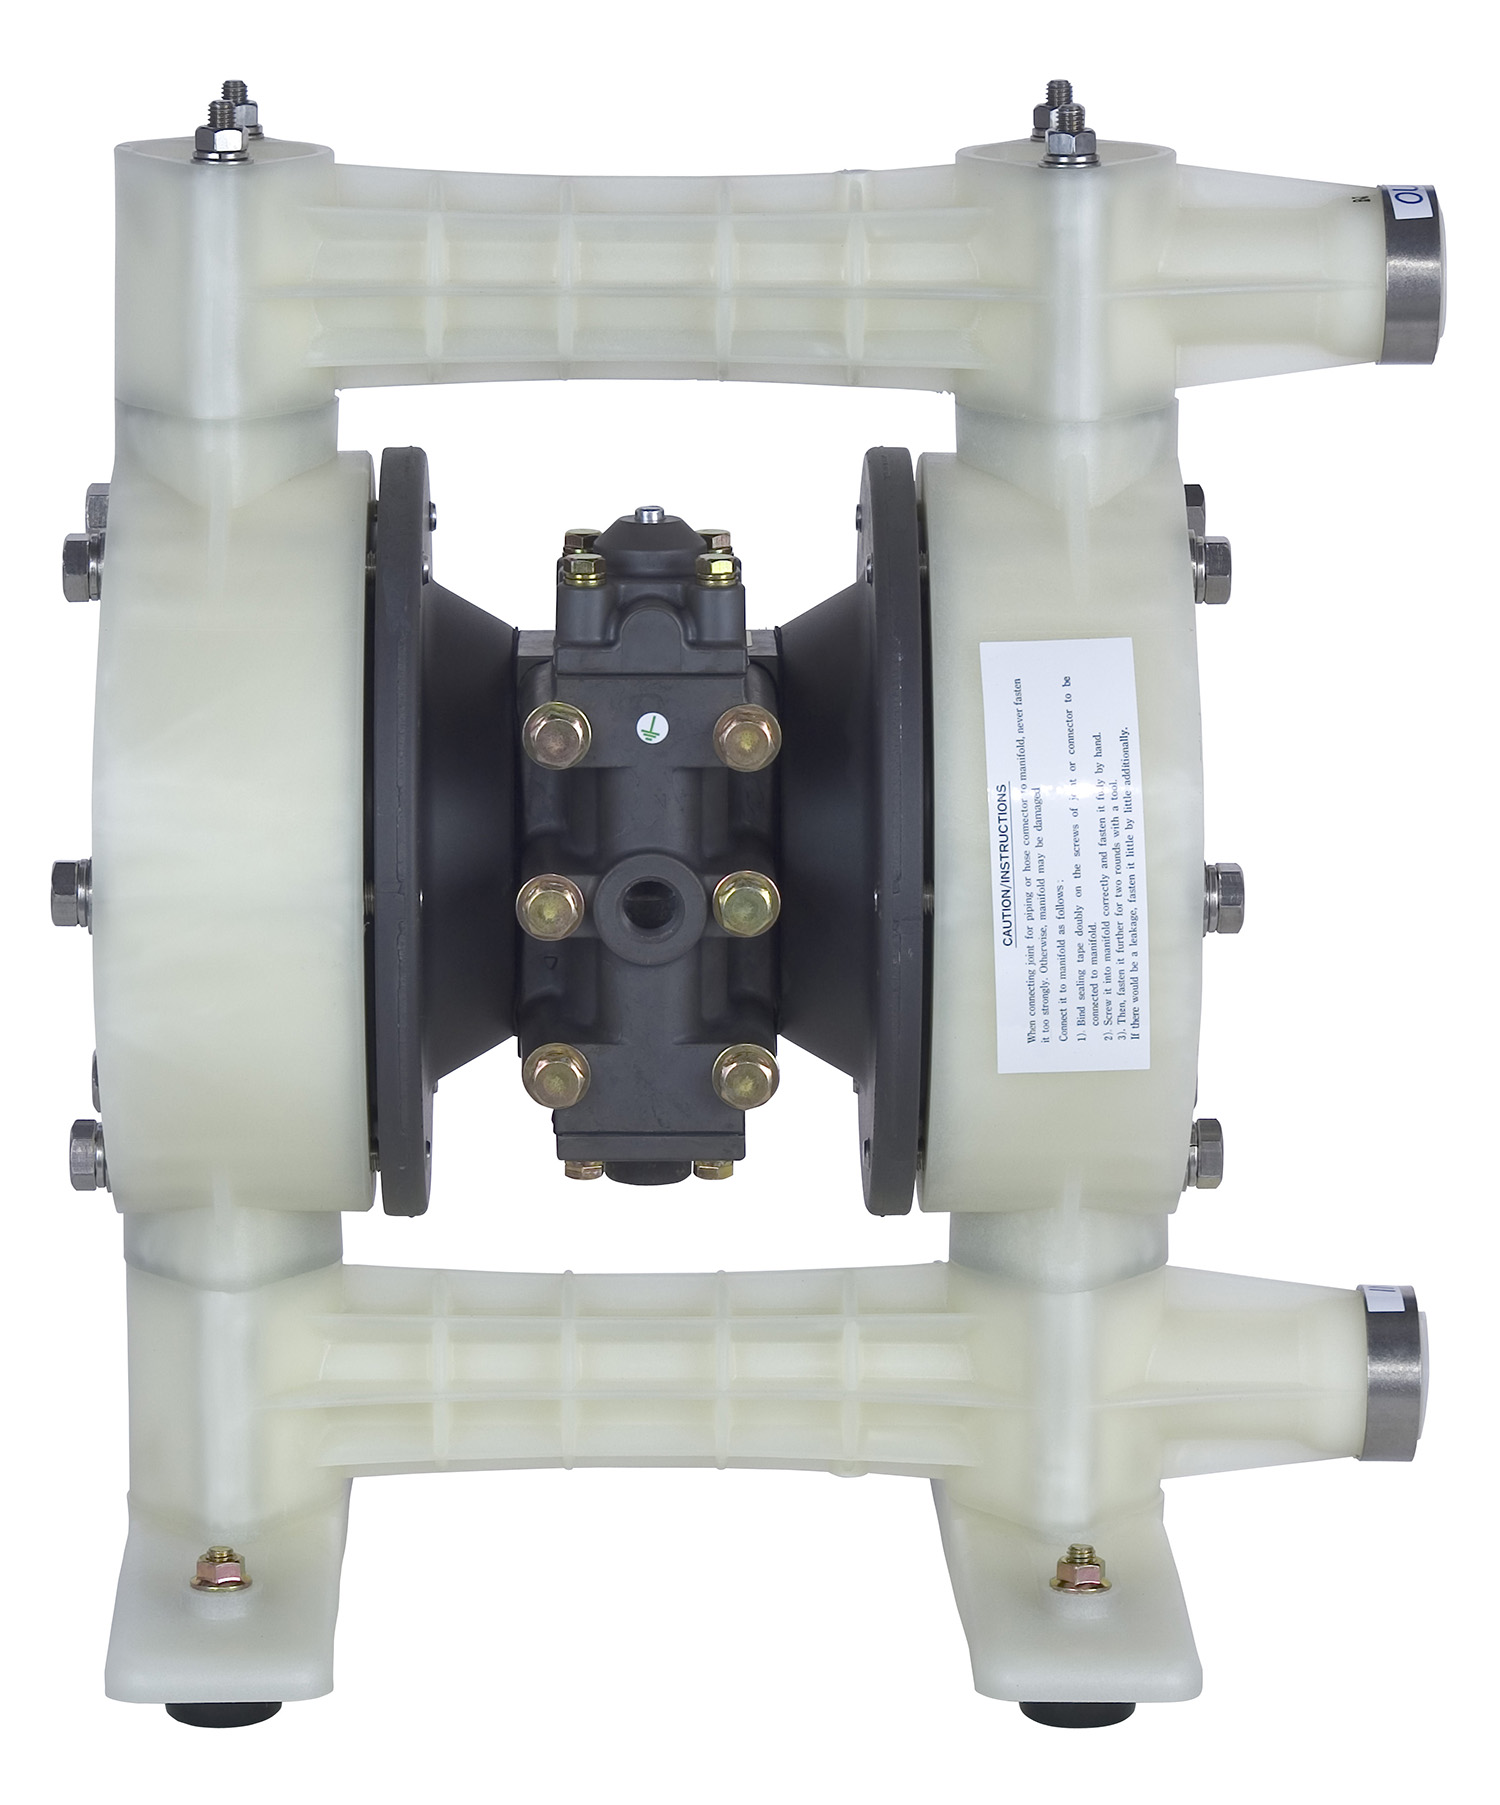 Yamada ndp 25 series 1 inch double diaphragm pumps reliable equip related products ccuart Images